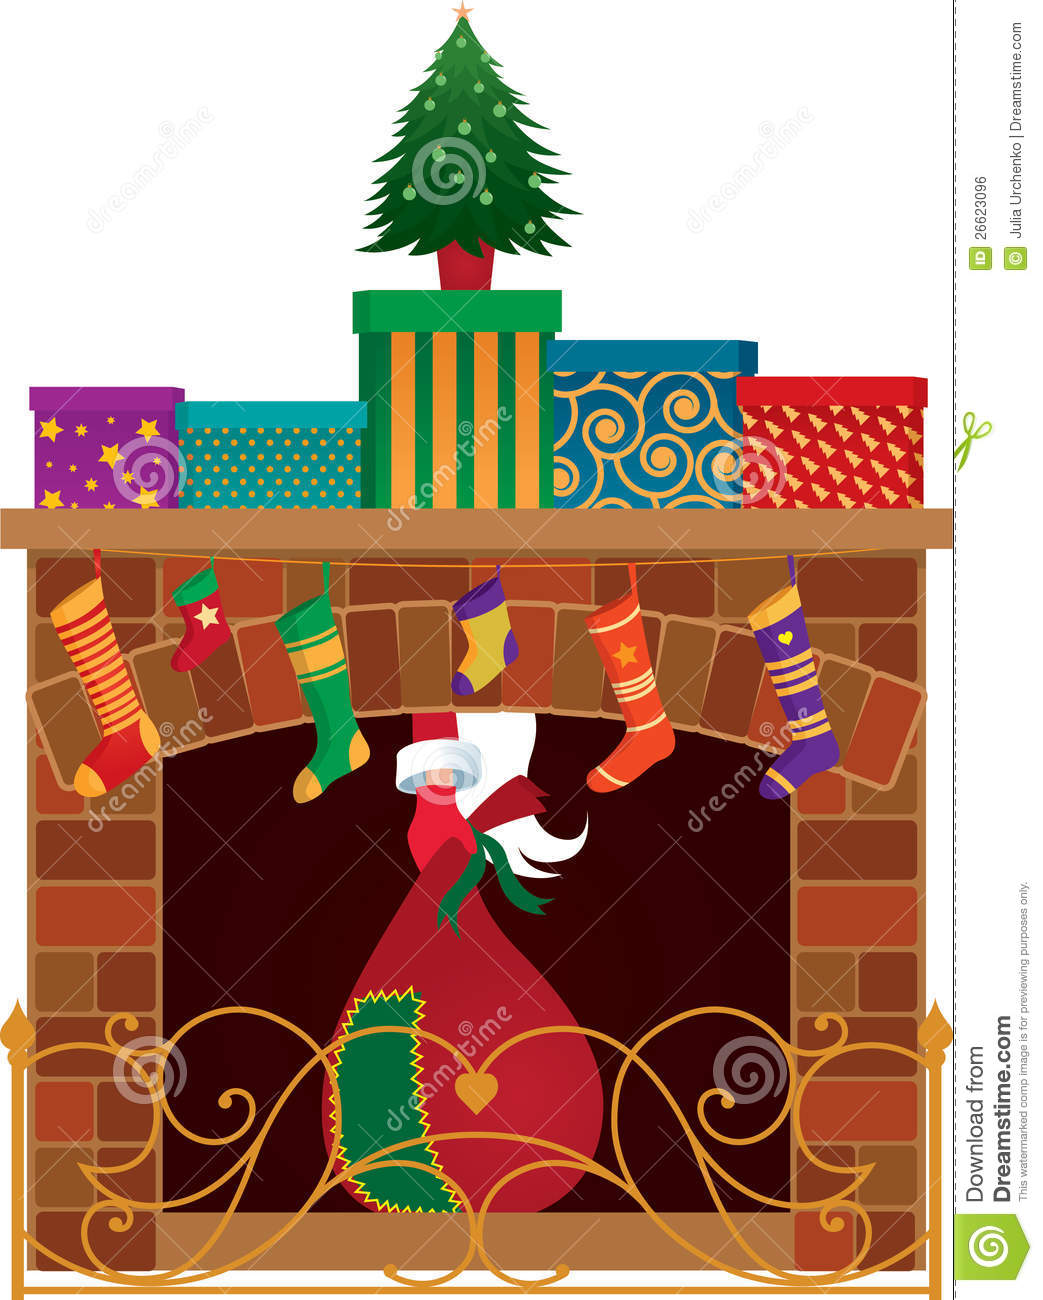 Fireplace clipart holiday Fireplace & Pie Holiday fireplace